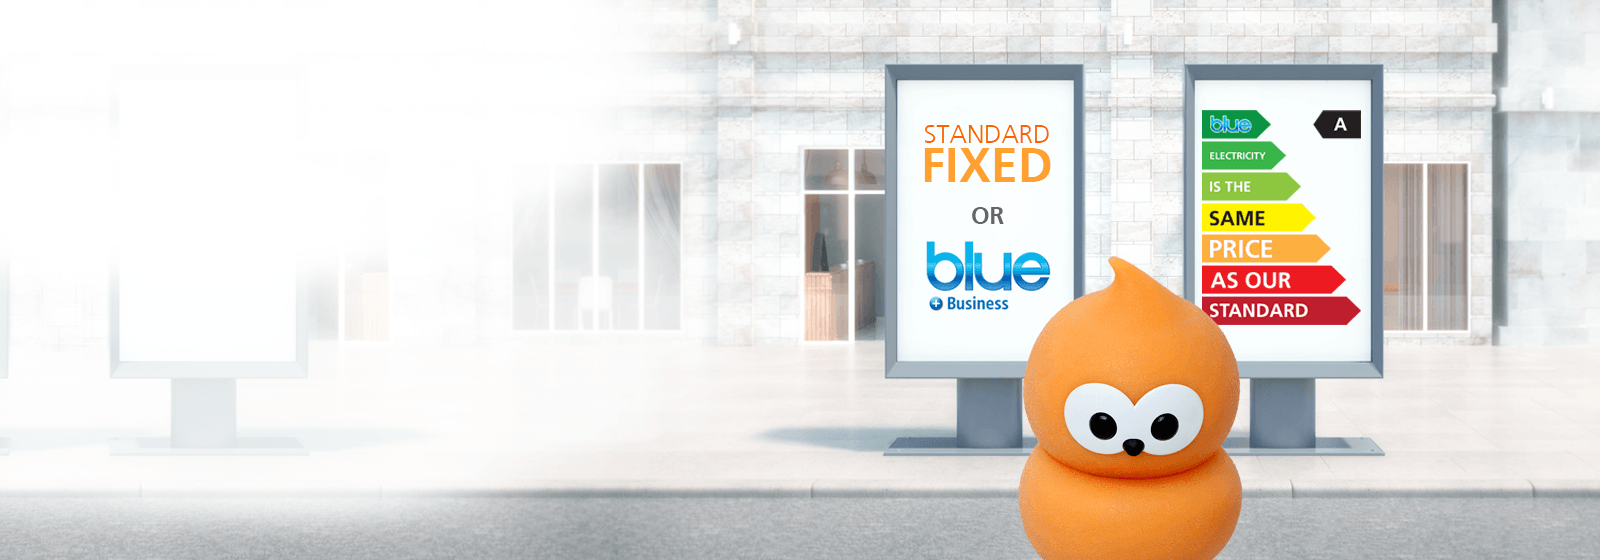 Fixed price business electricity contracts from EDF Energy